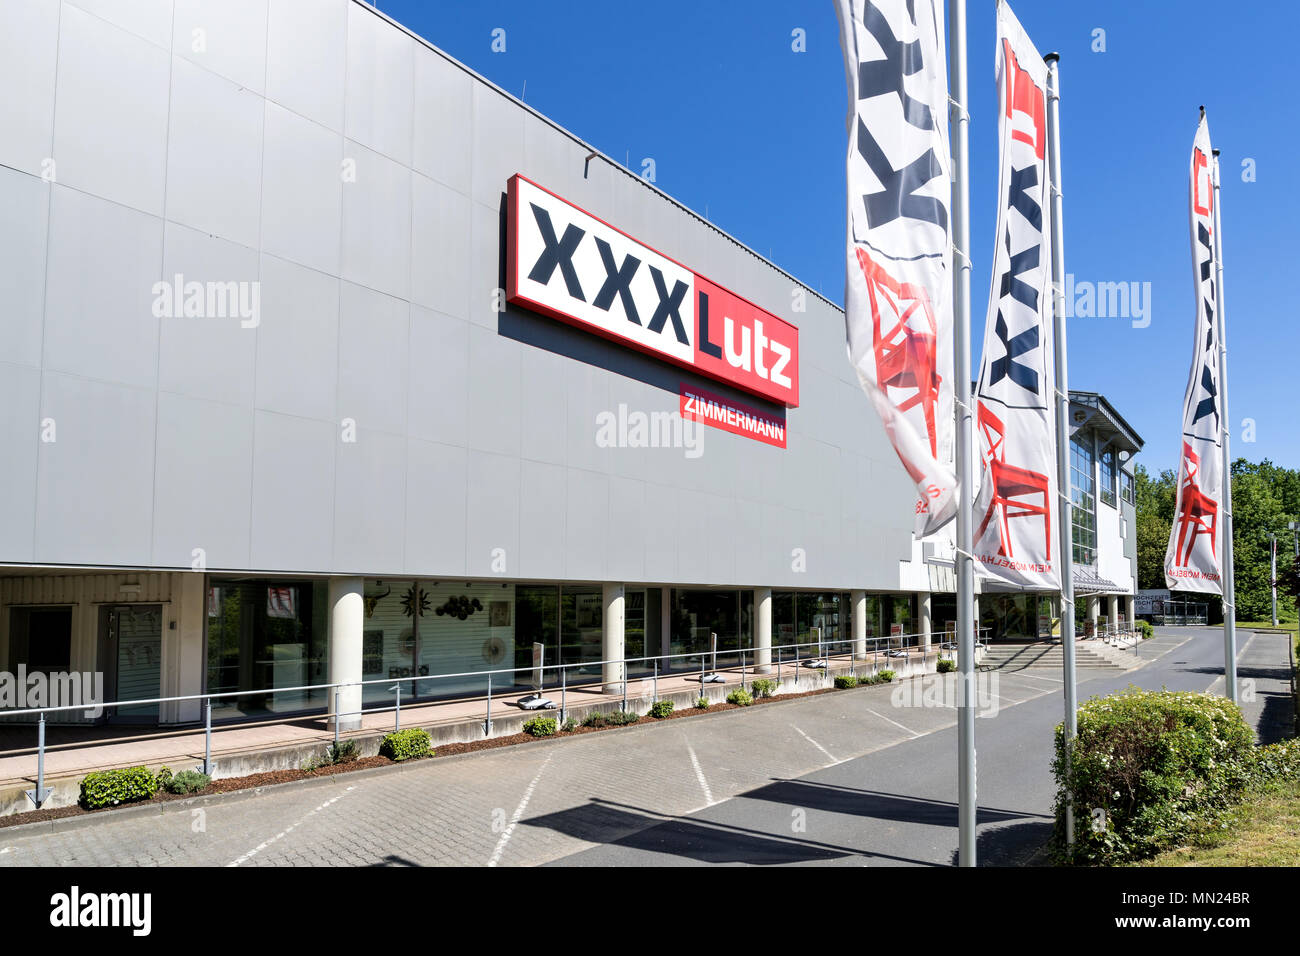 Xxlutz Linz Austria Retail Facade Stock Photos Austria Retail Facade Stock